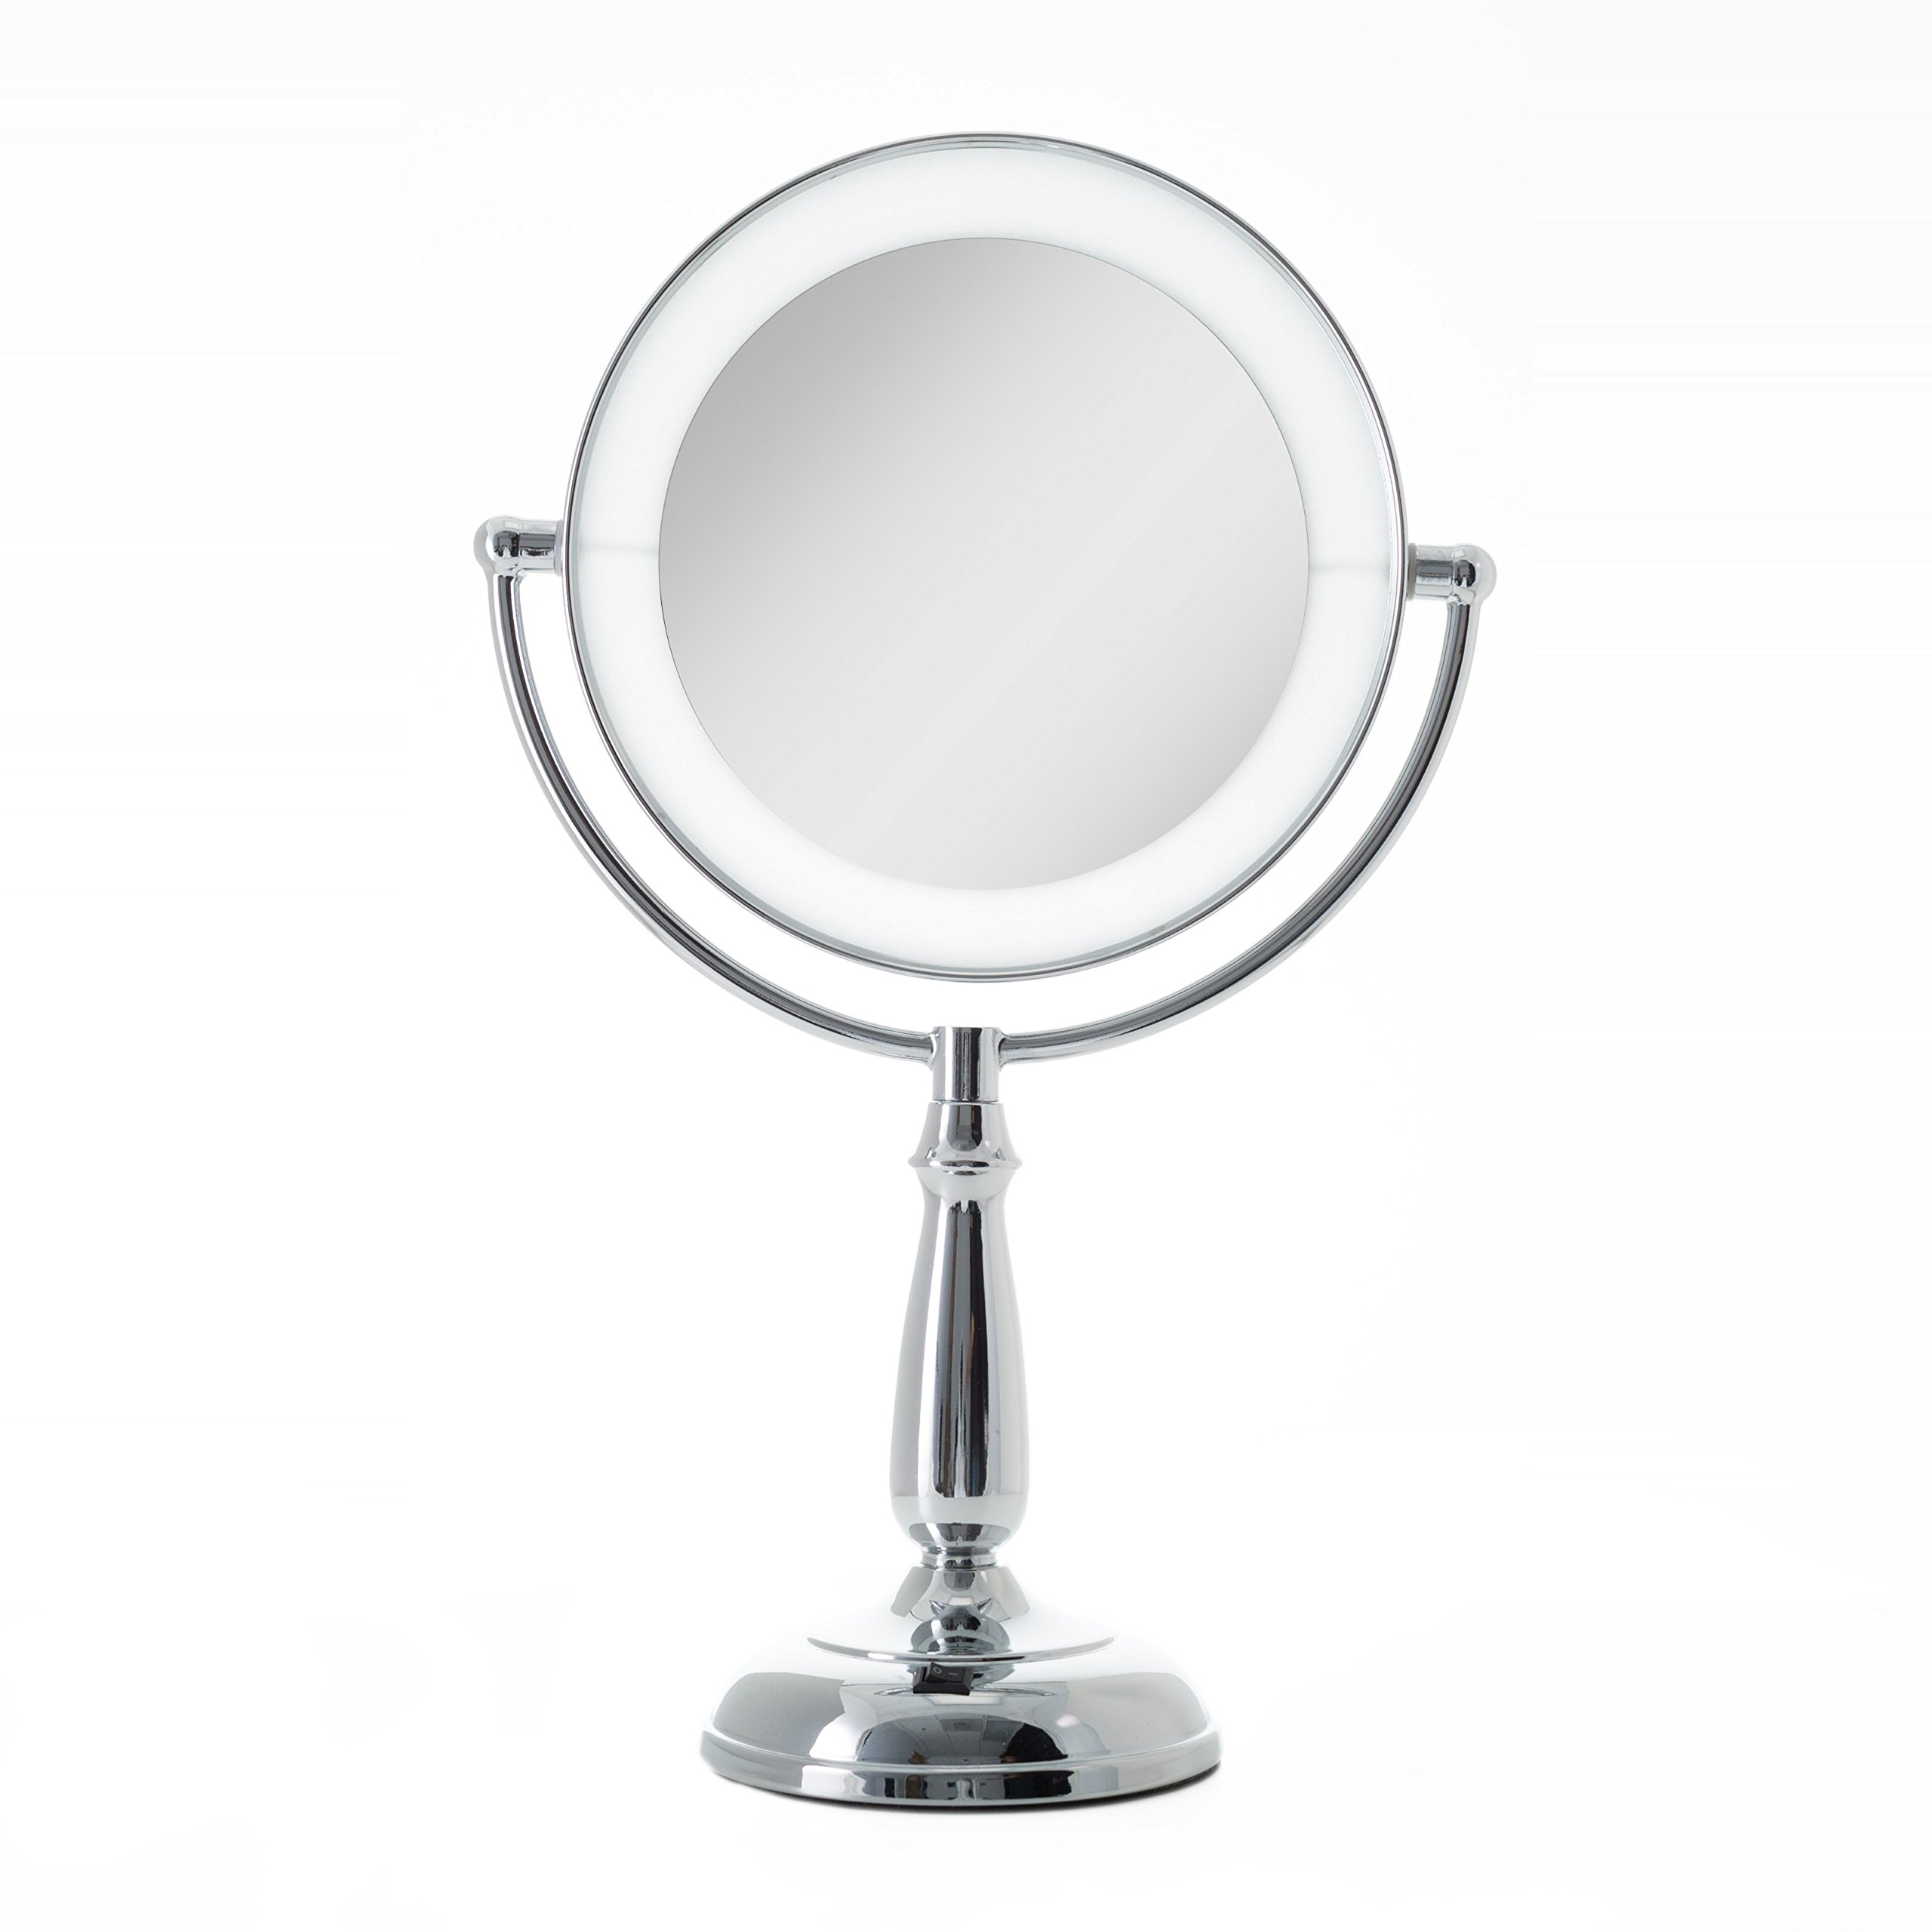 Zadro Dimmable Touch Ultra Bright Dual-Sided LED Lighted Vanity Mirror with 1X & 5X magnification in Chrome Finish